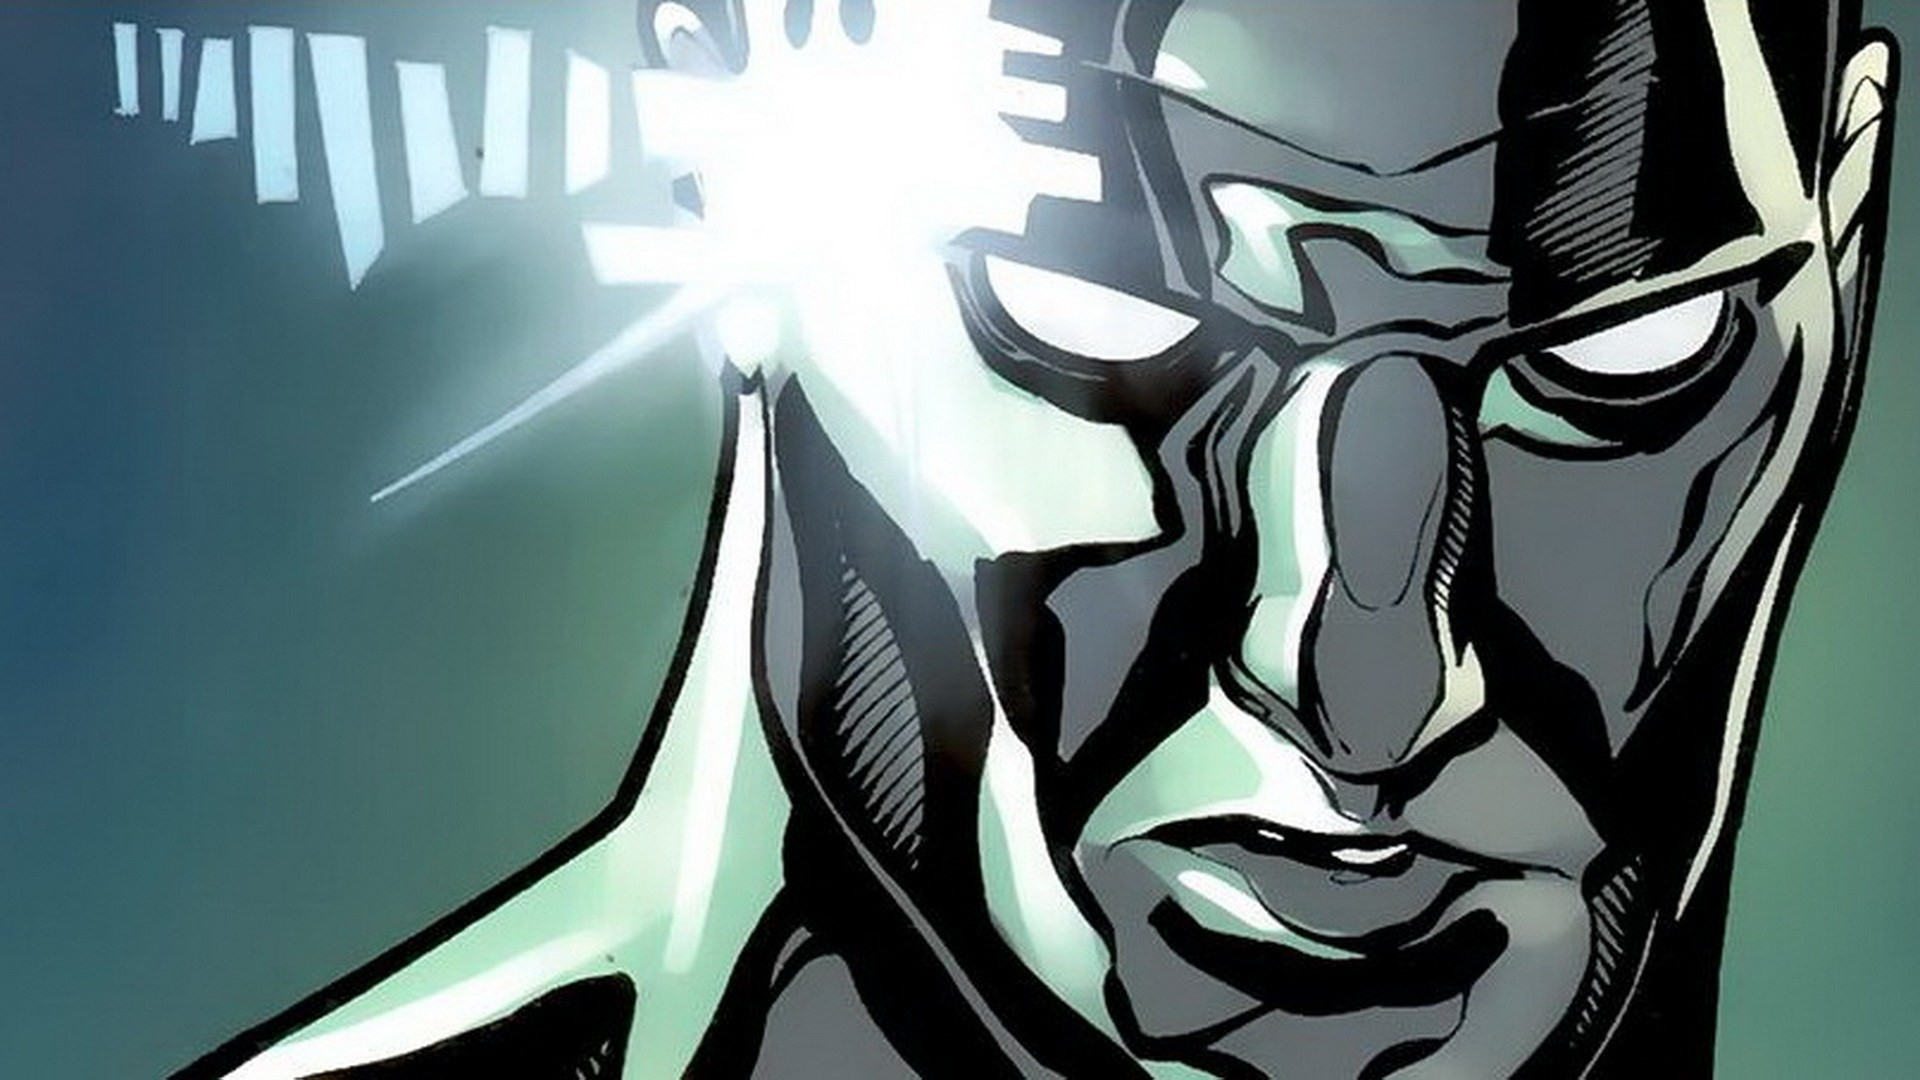 free screensaver wallpapers for silver surfer